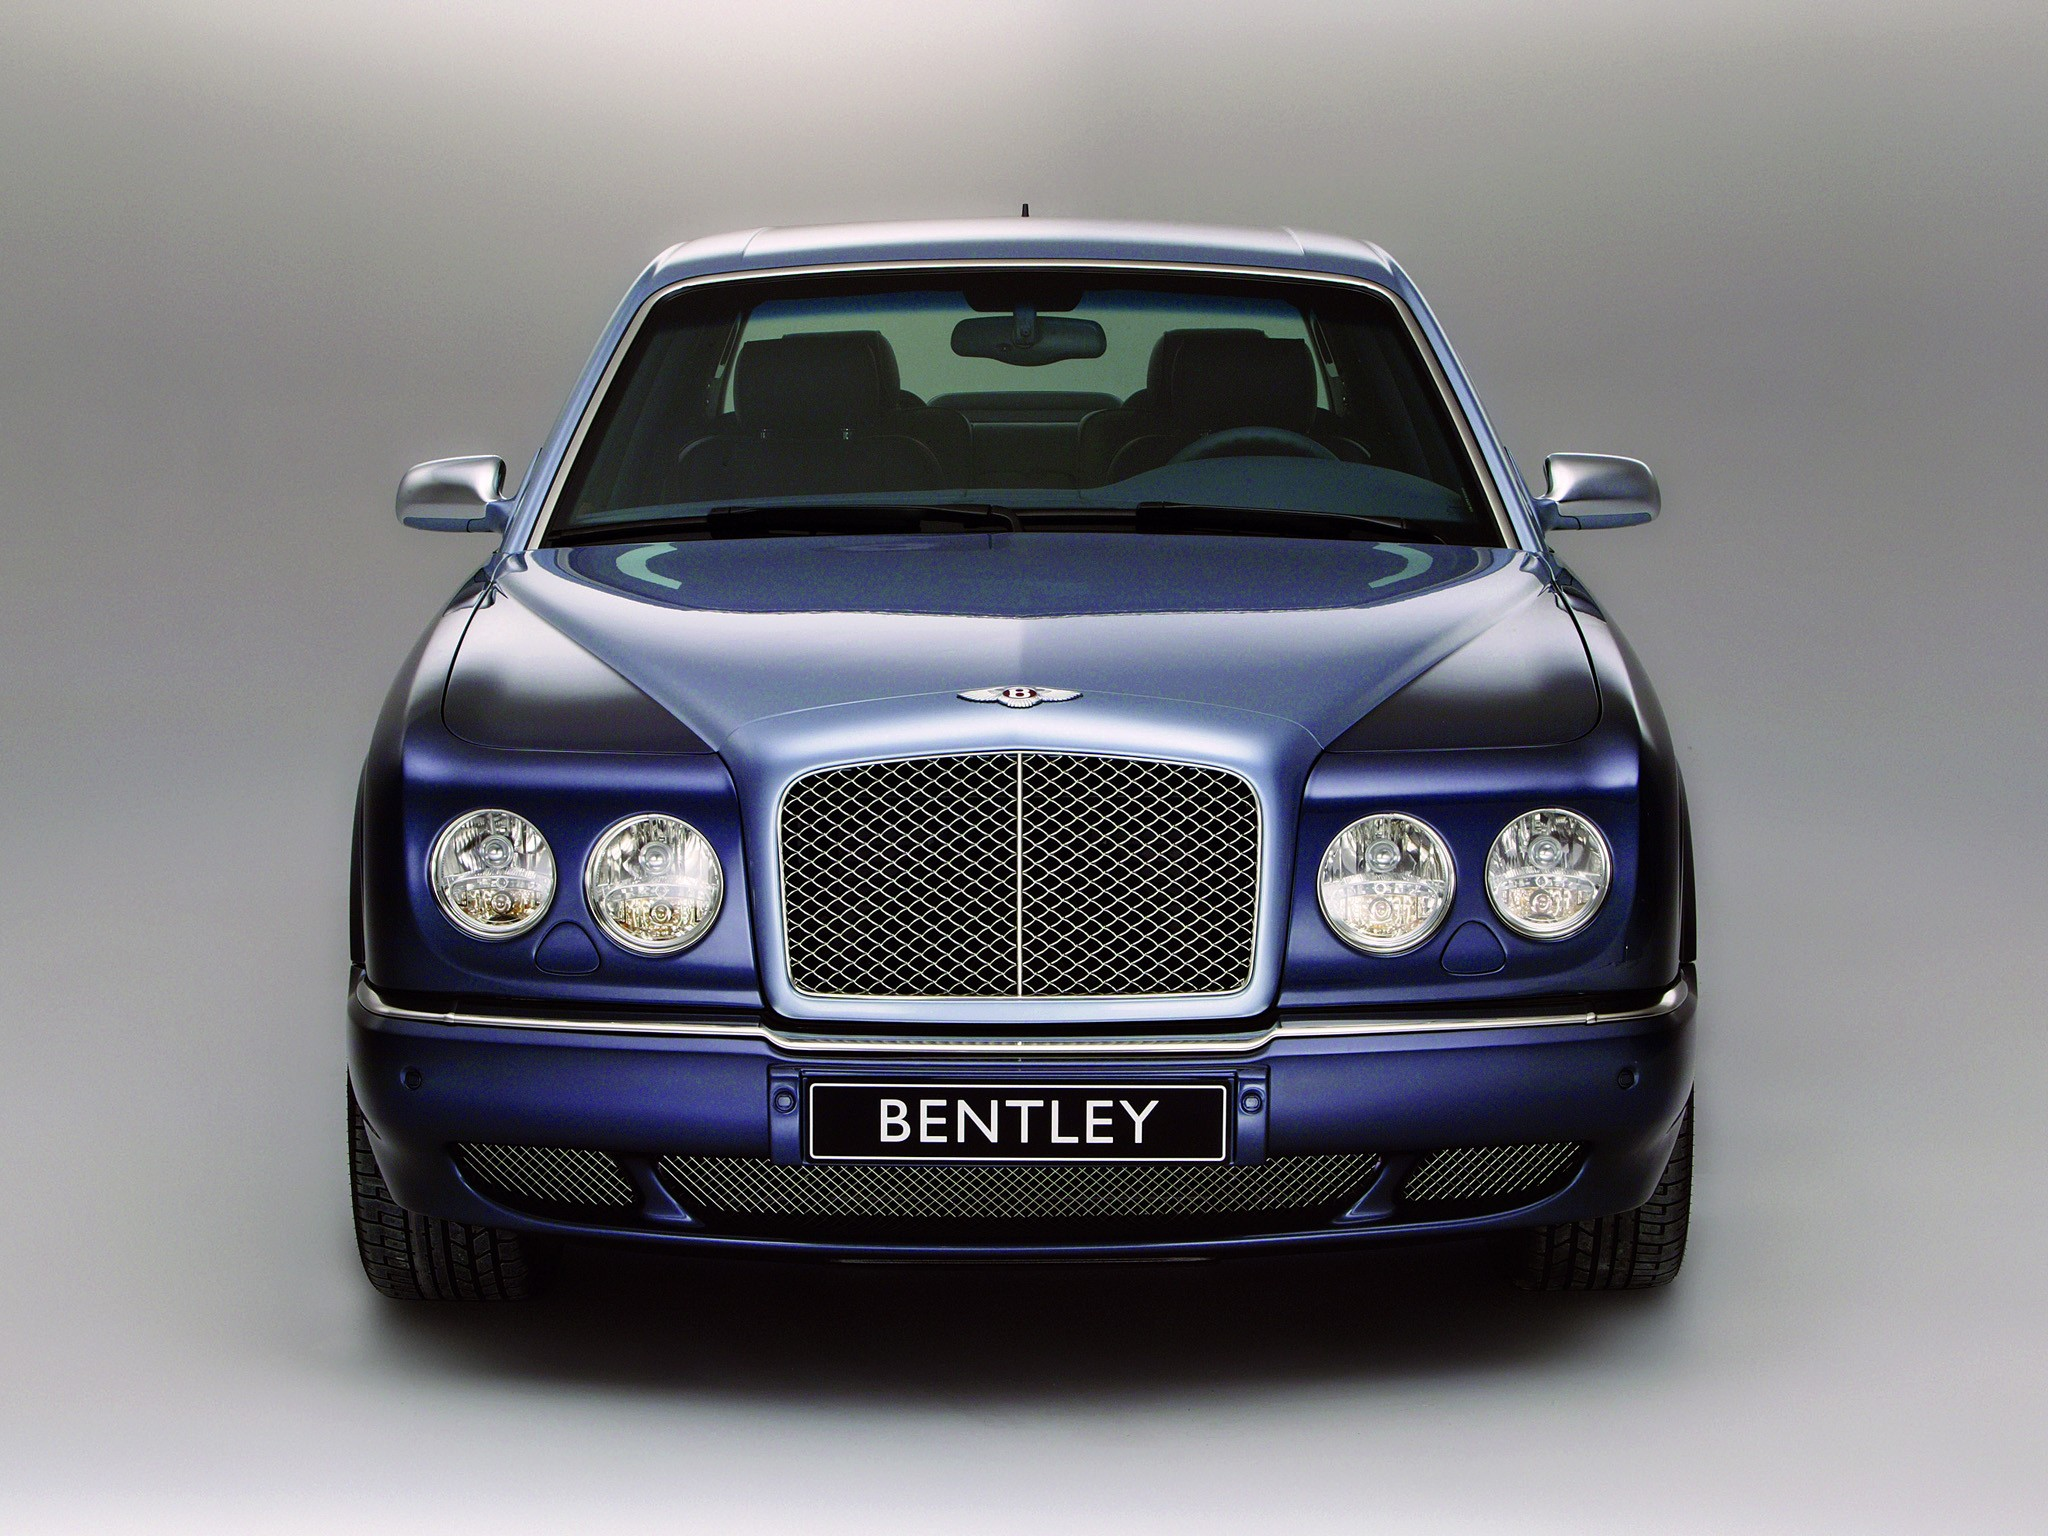 2005 bentley arnage t image collections hd cars wallpaper bentley arnage r specs 2005 2006 2007 2008 2009 autoevolution bentley arnage r 2005 2009 vanachro vanachro Choice Image